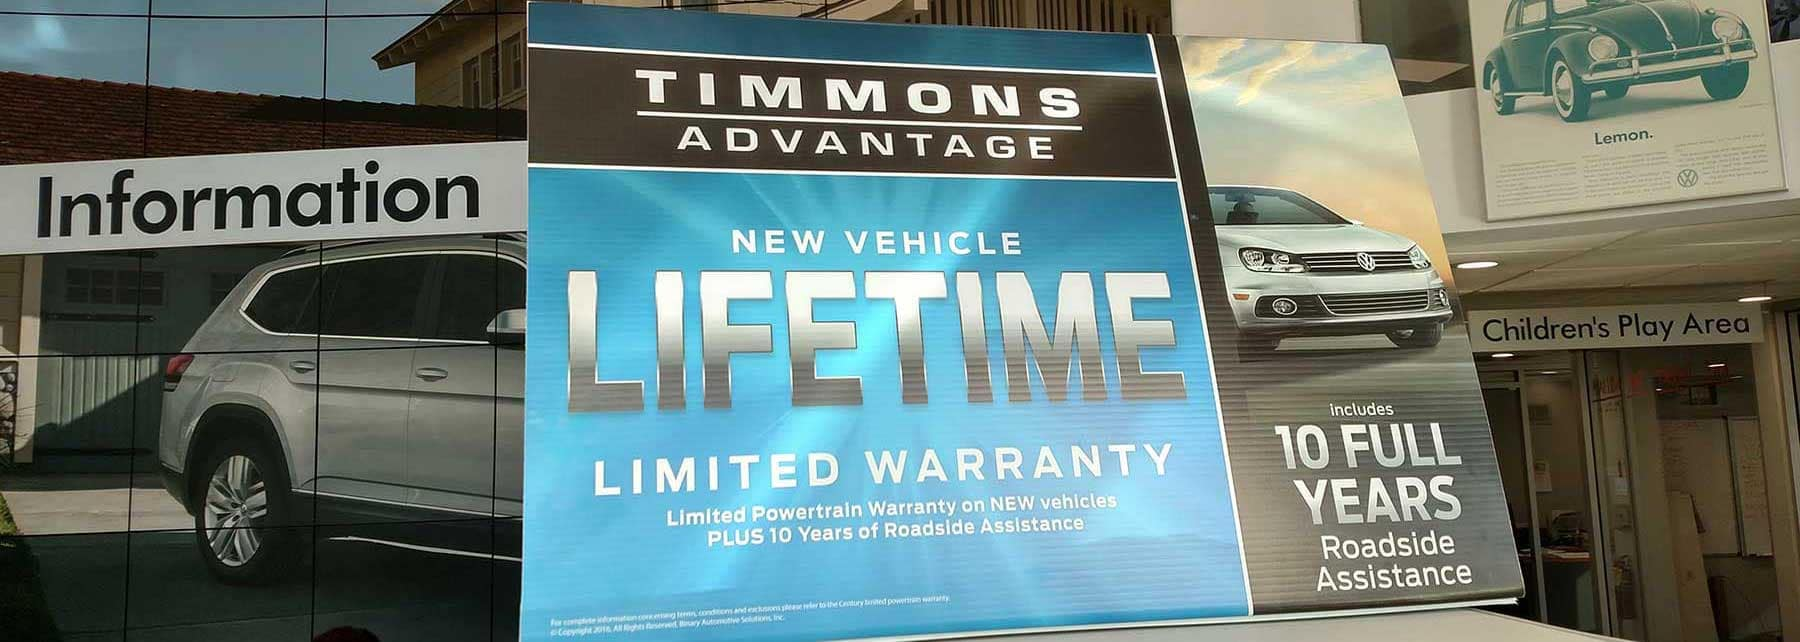 New Vehicle Lifetime Limited Warranty